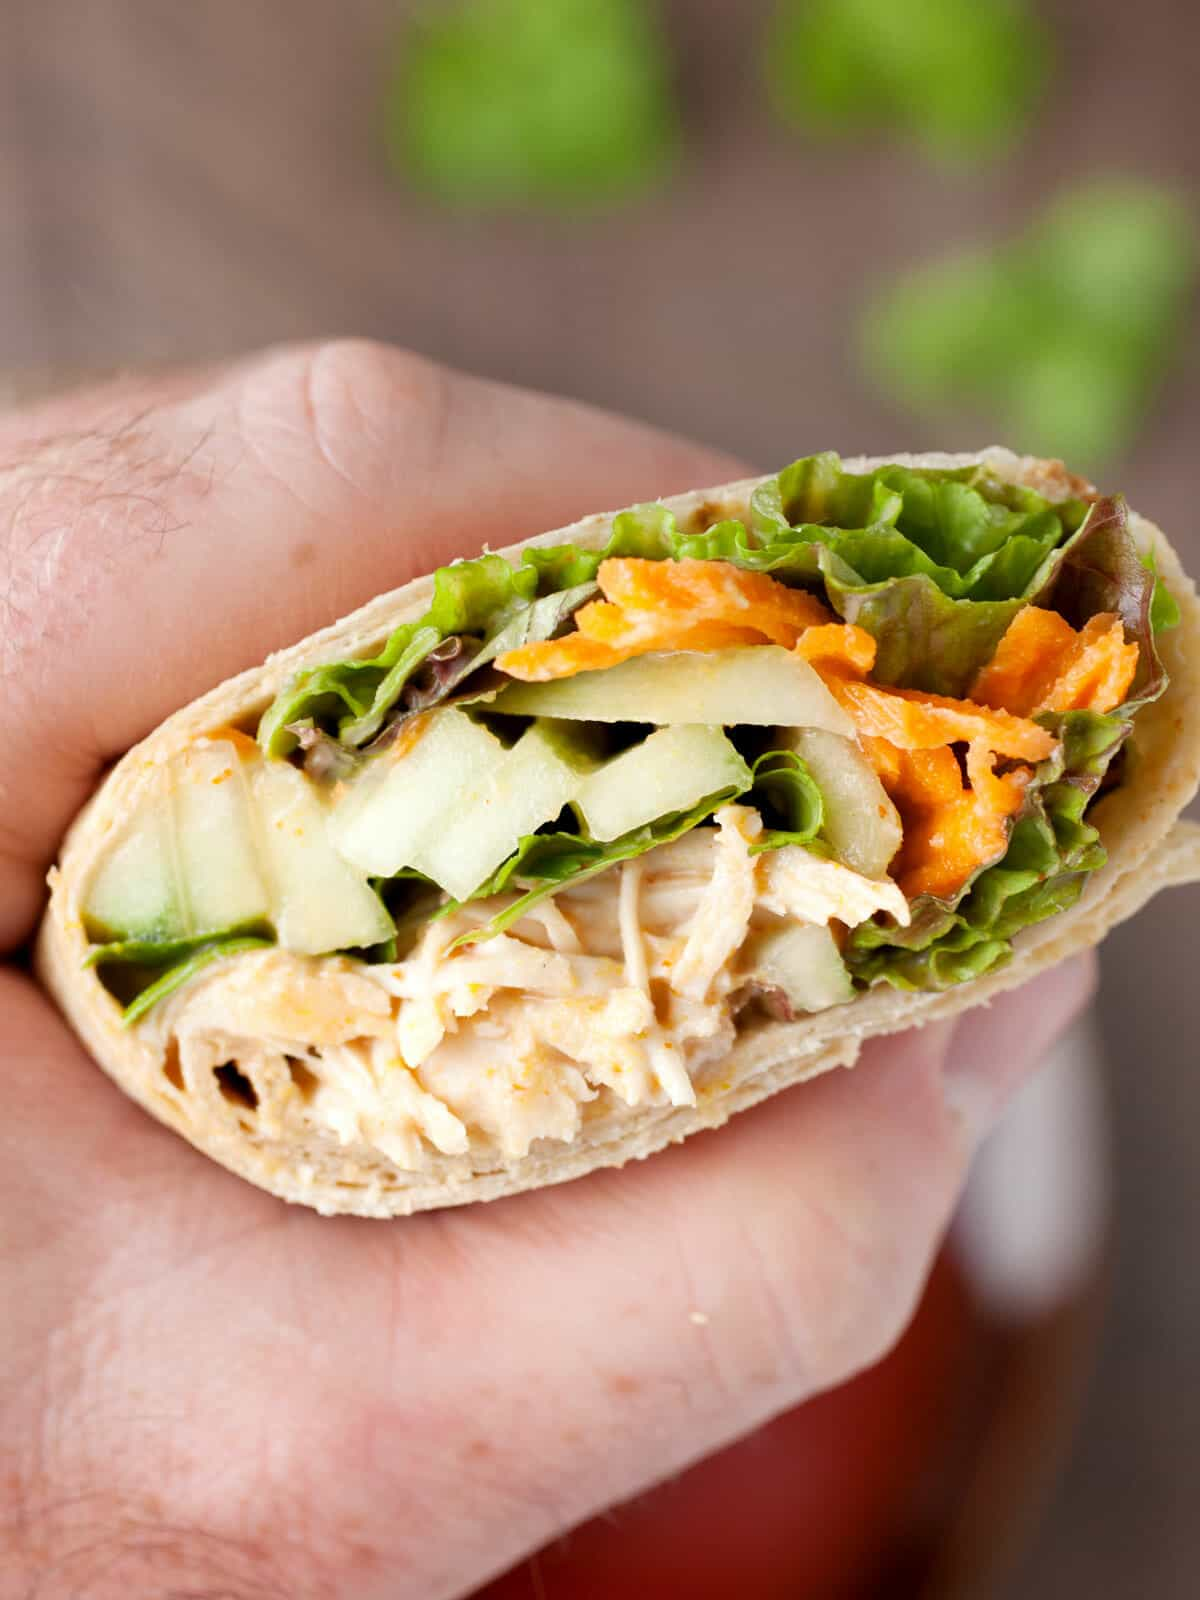 Spicy Coconut Chicken Wraps: These simple and flavorful chicken wraps can be made with poached chicken or a rotisserie chicken. They have loads of fresh, crunchy veggies but are still really fast to make. A great fast dinner or weekday lunch option! | macheesmo.com